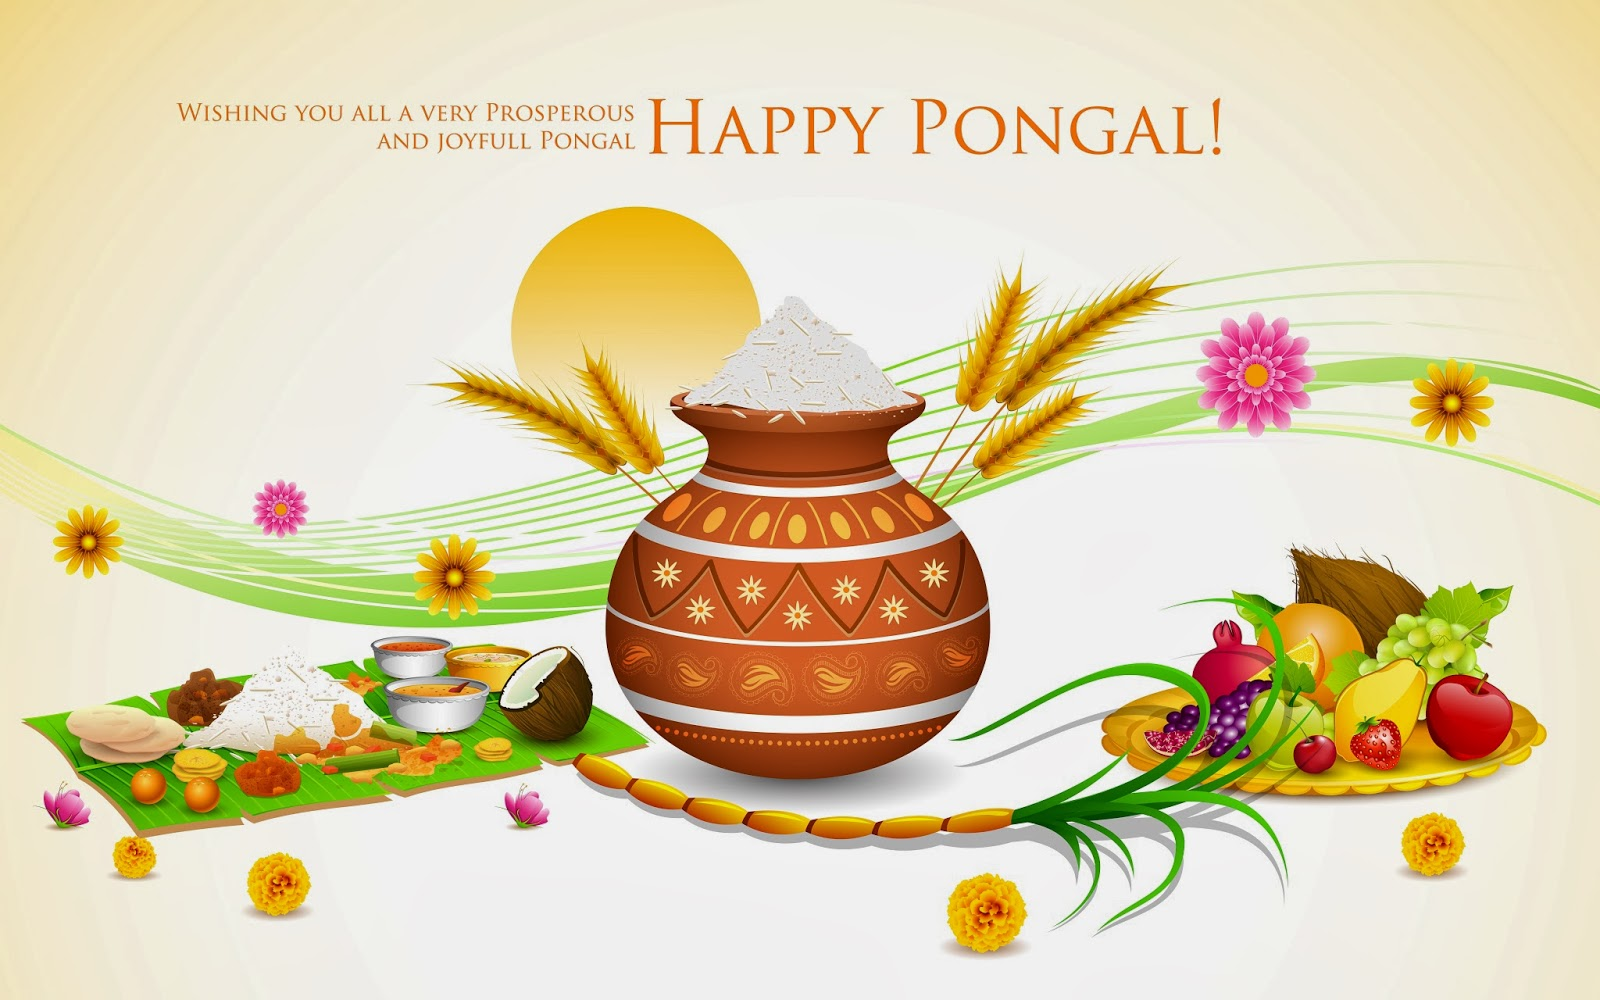 letest-pongal-image-colletions-hd-wallpapers-naveengfx.com